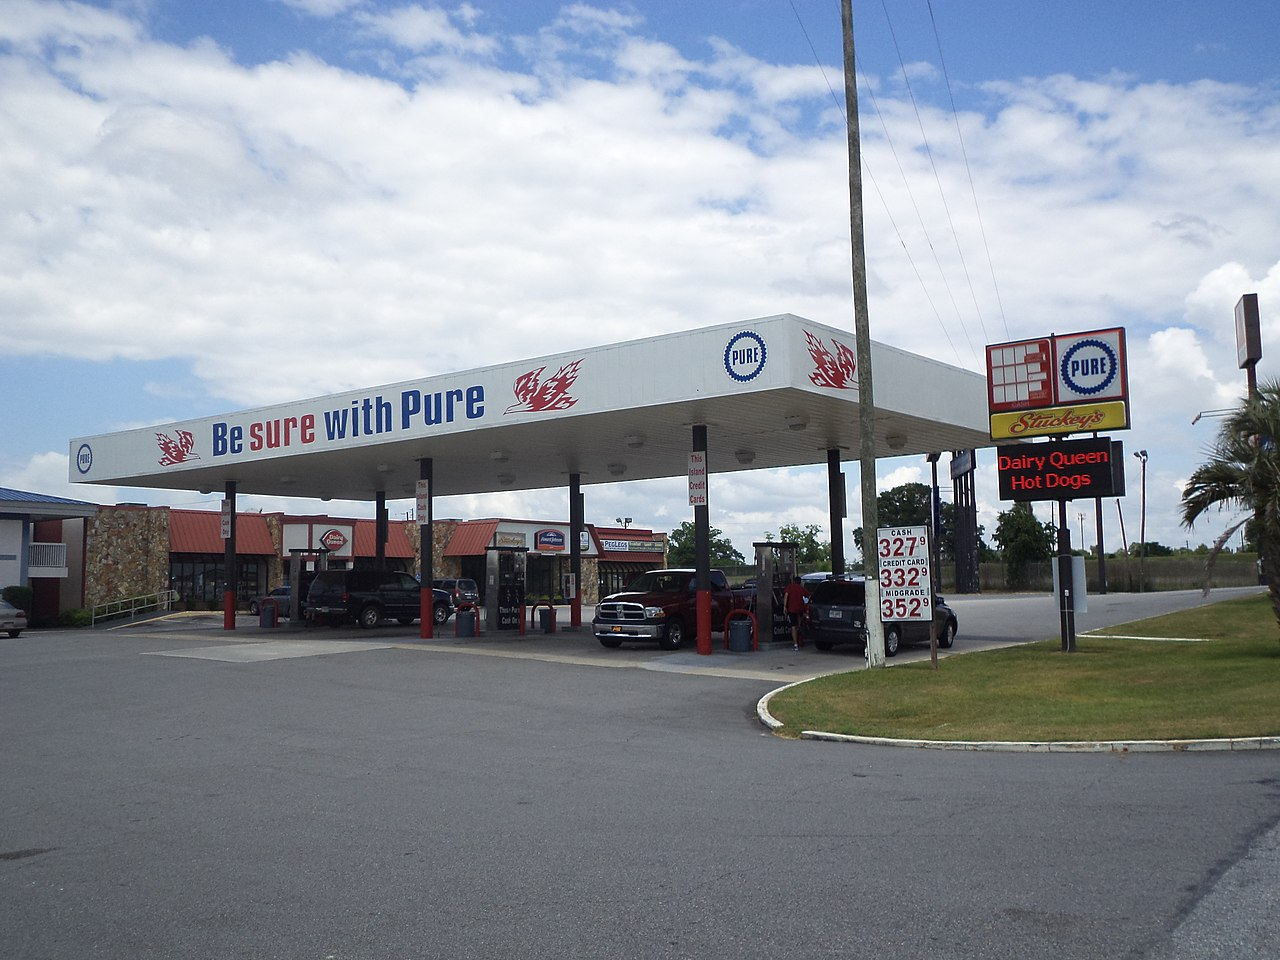 FilePure Gas Station 4598 N Valdosta RdJPG  Wikimedia